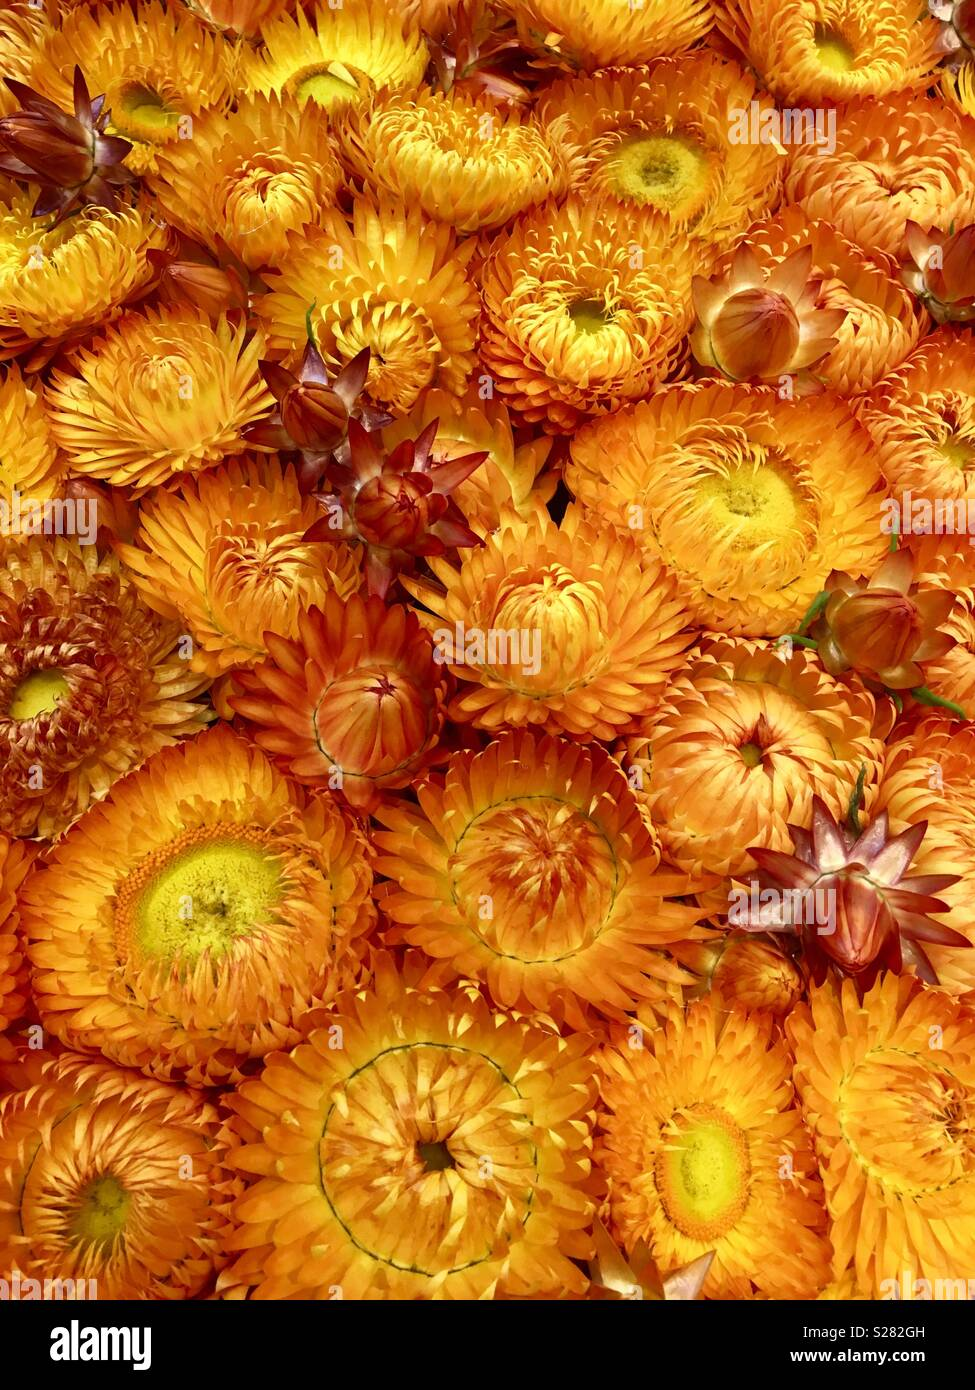 Dried Australian Native Paper Daisy Flowers Stock Photo 311193585